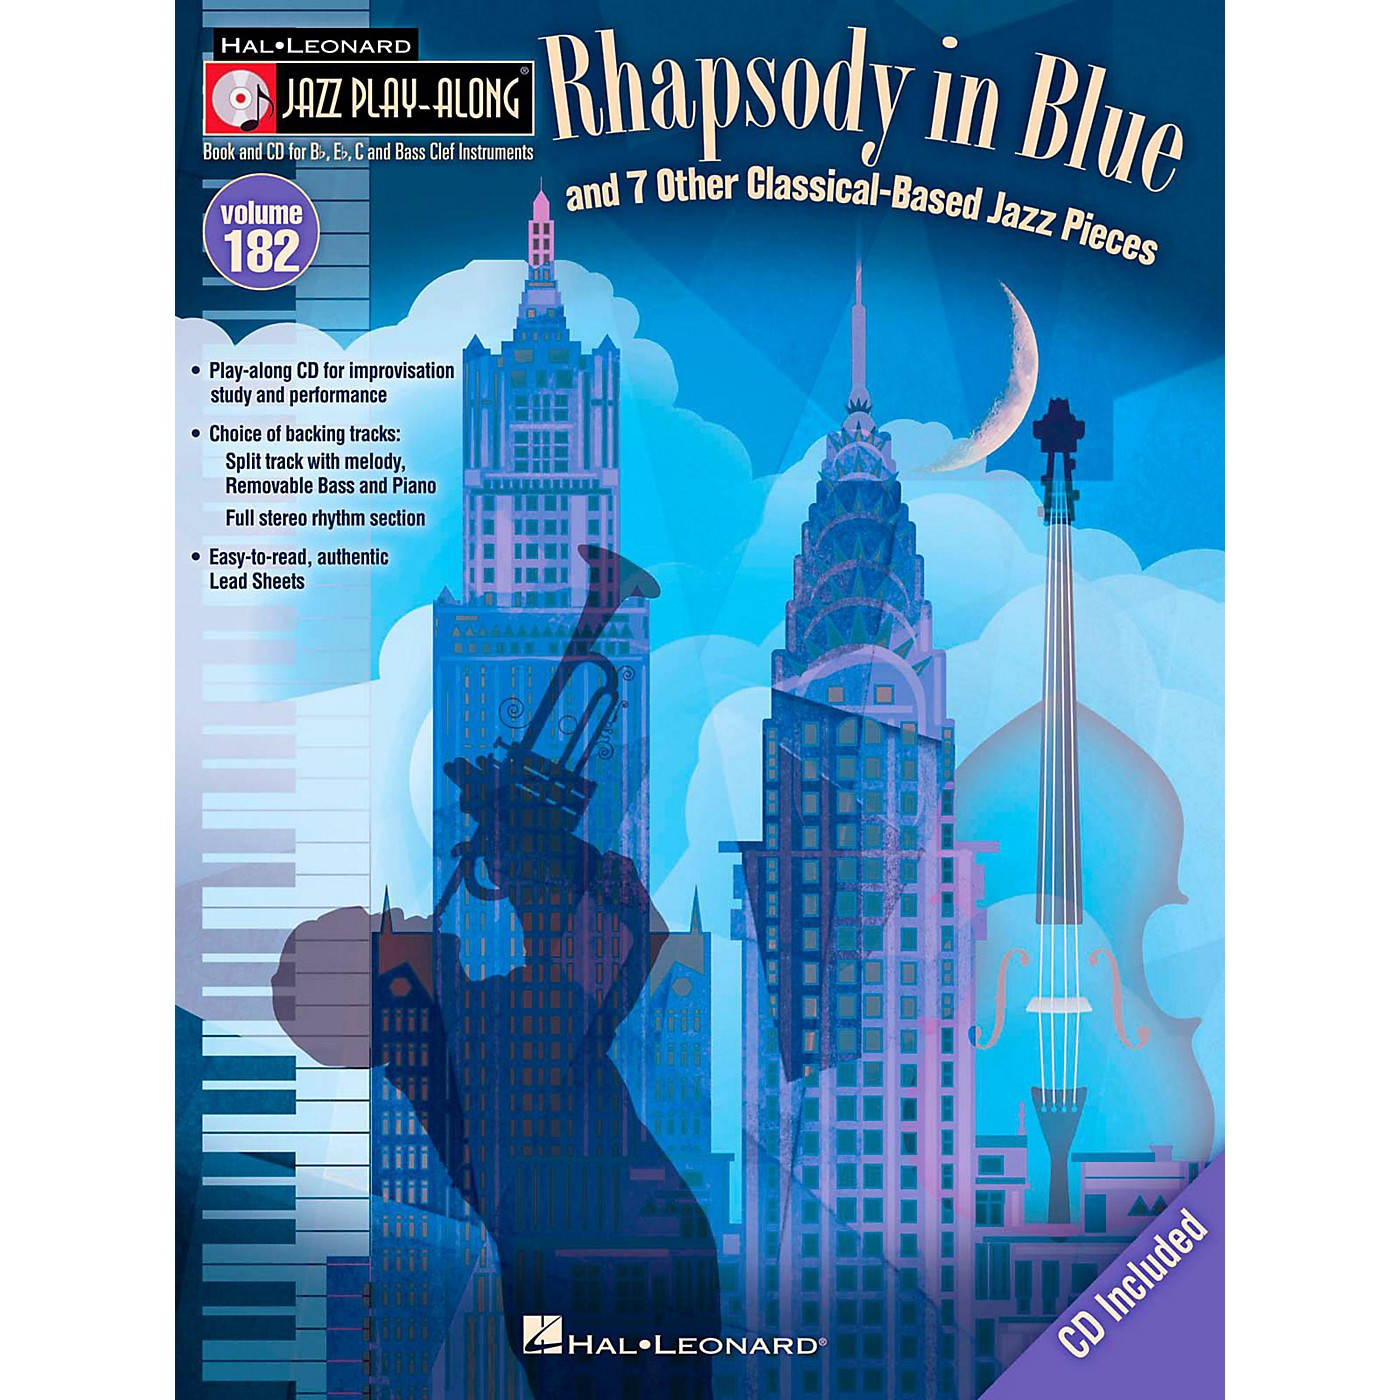 Hal Leonard Rhapsody In Blue & 7 Other Classical-Based Jazz Pieces - Jazz Play-Along 182 Book/CD thumbnail